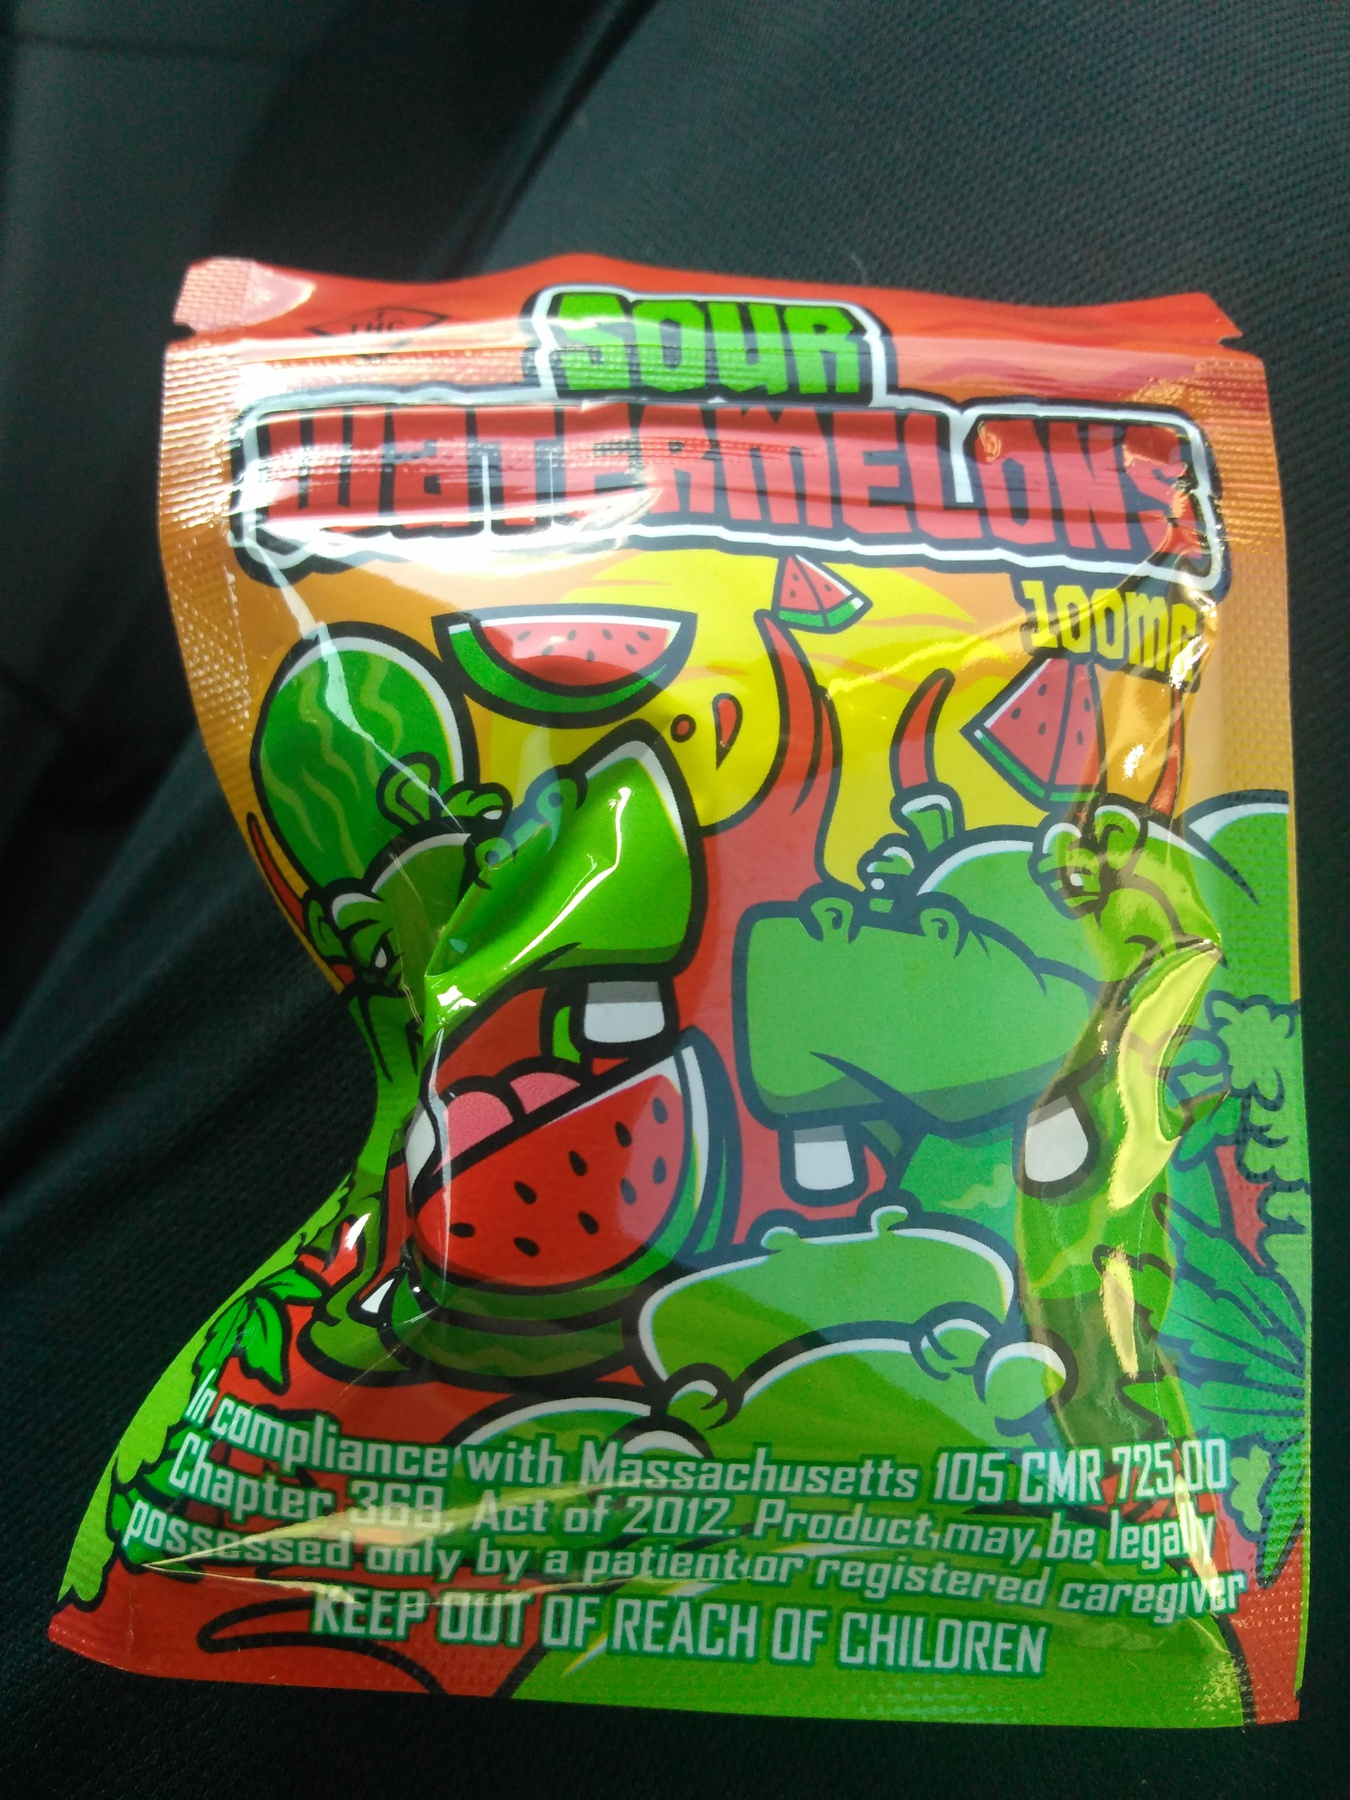 Sour Watermelons 100MG Product image